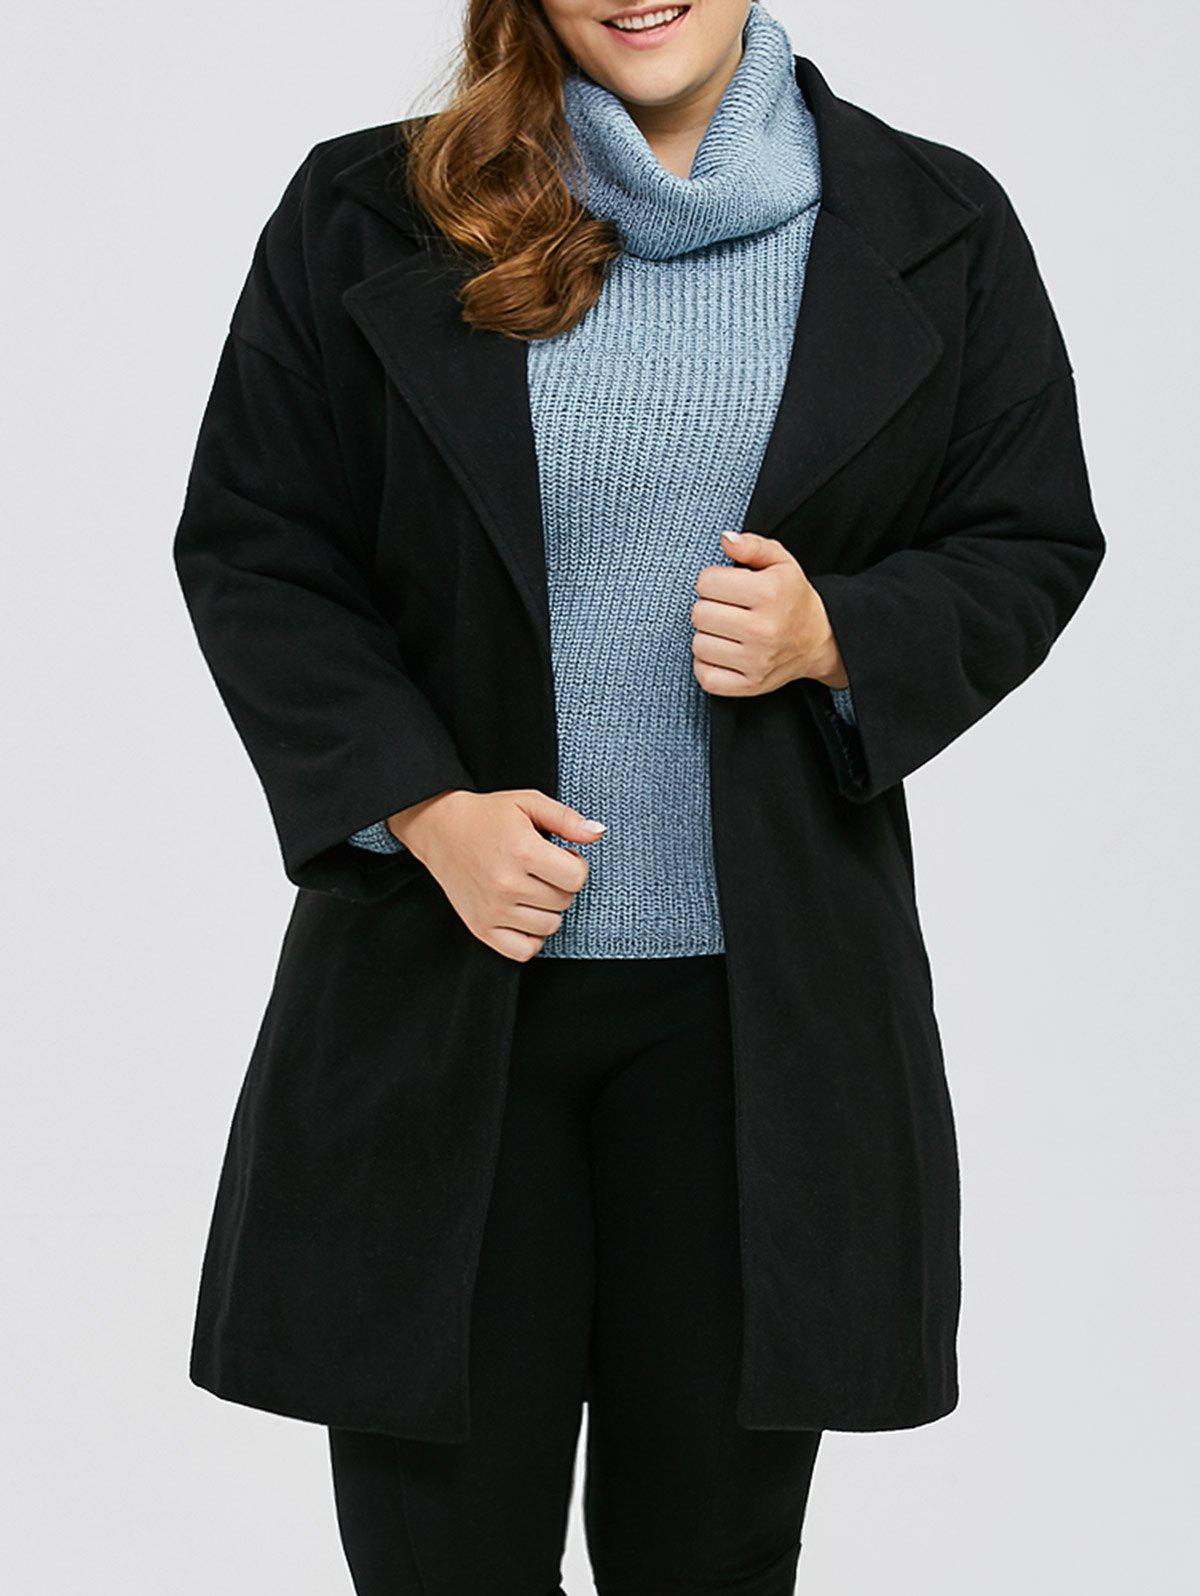 Plus Size Wool Coat With LapelWomen<br><br><br>Size: XL<br>Color: BLACK